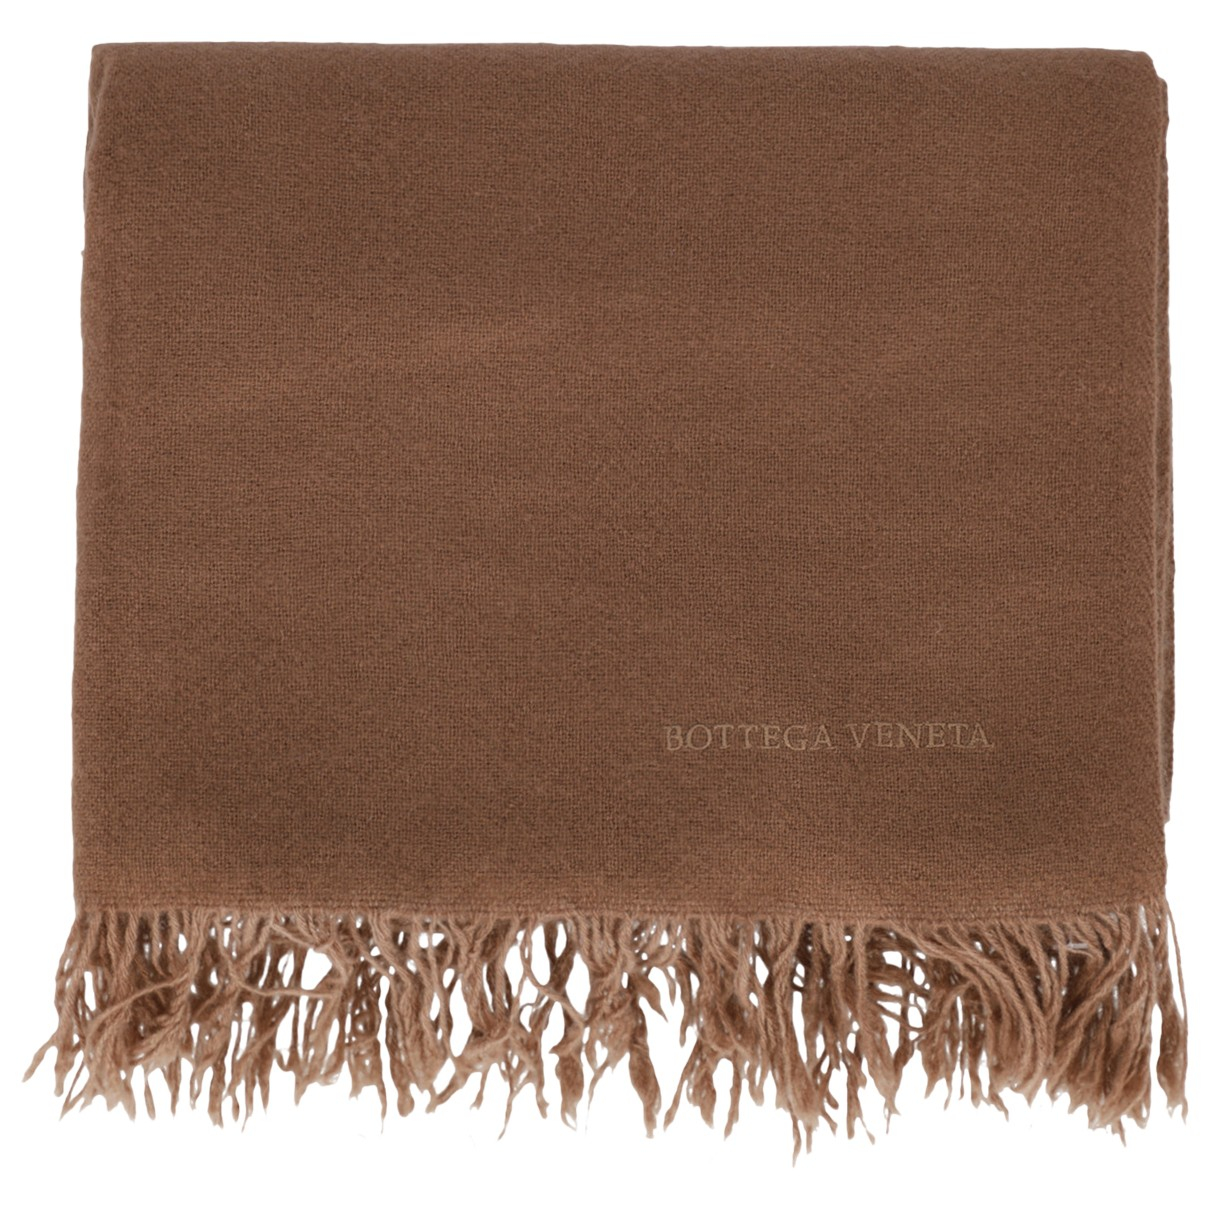 Bottega Veneta \N Beige Wool scarf for Women \N